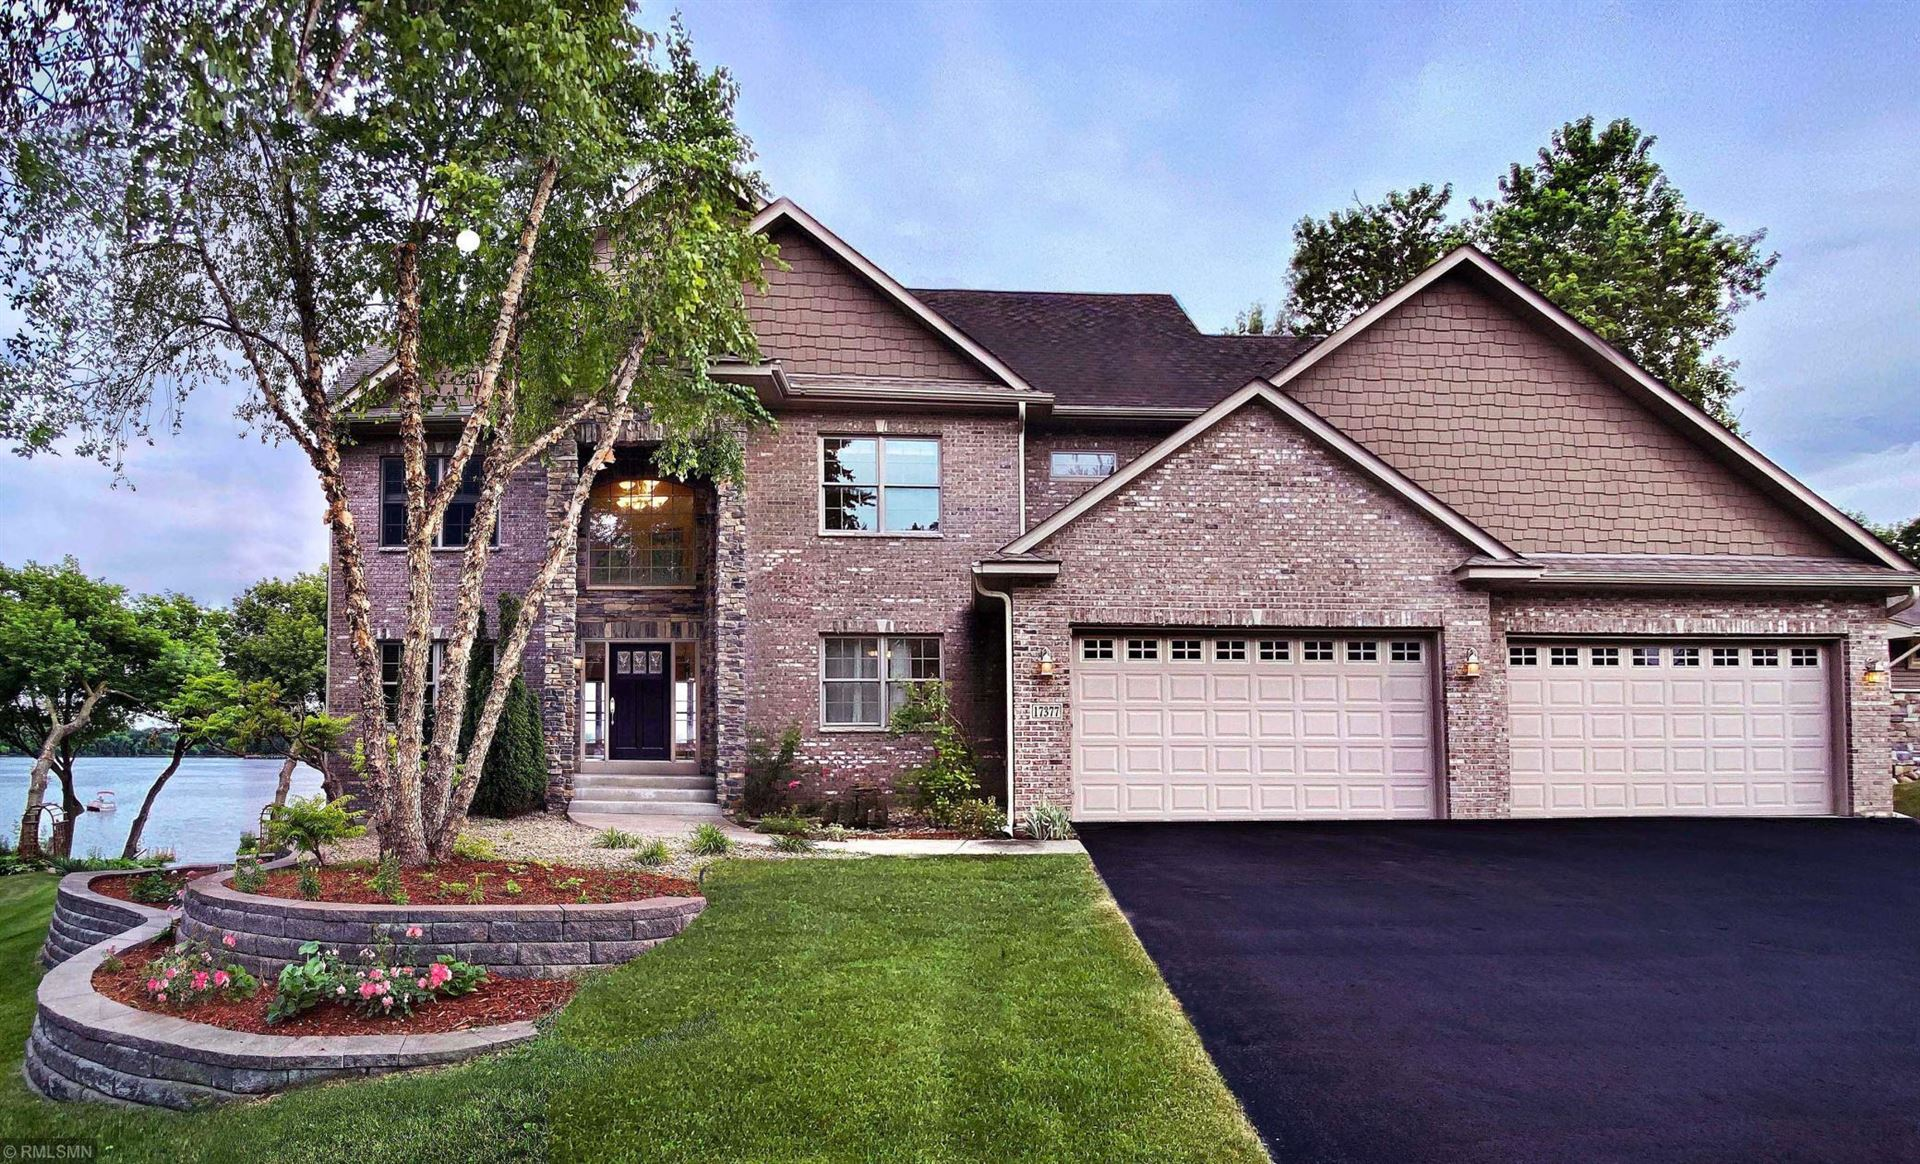 17377 Weaver Lake Drive Maple Grove Mn 55311 Mls 5622889 Listing Information Real Living First Realty Real Living Real Estate